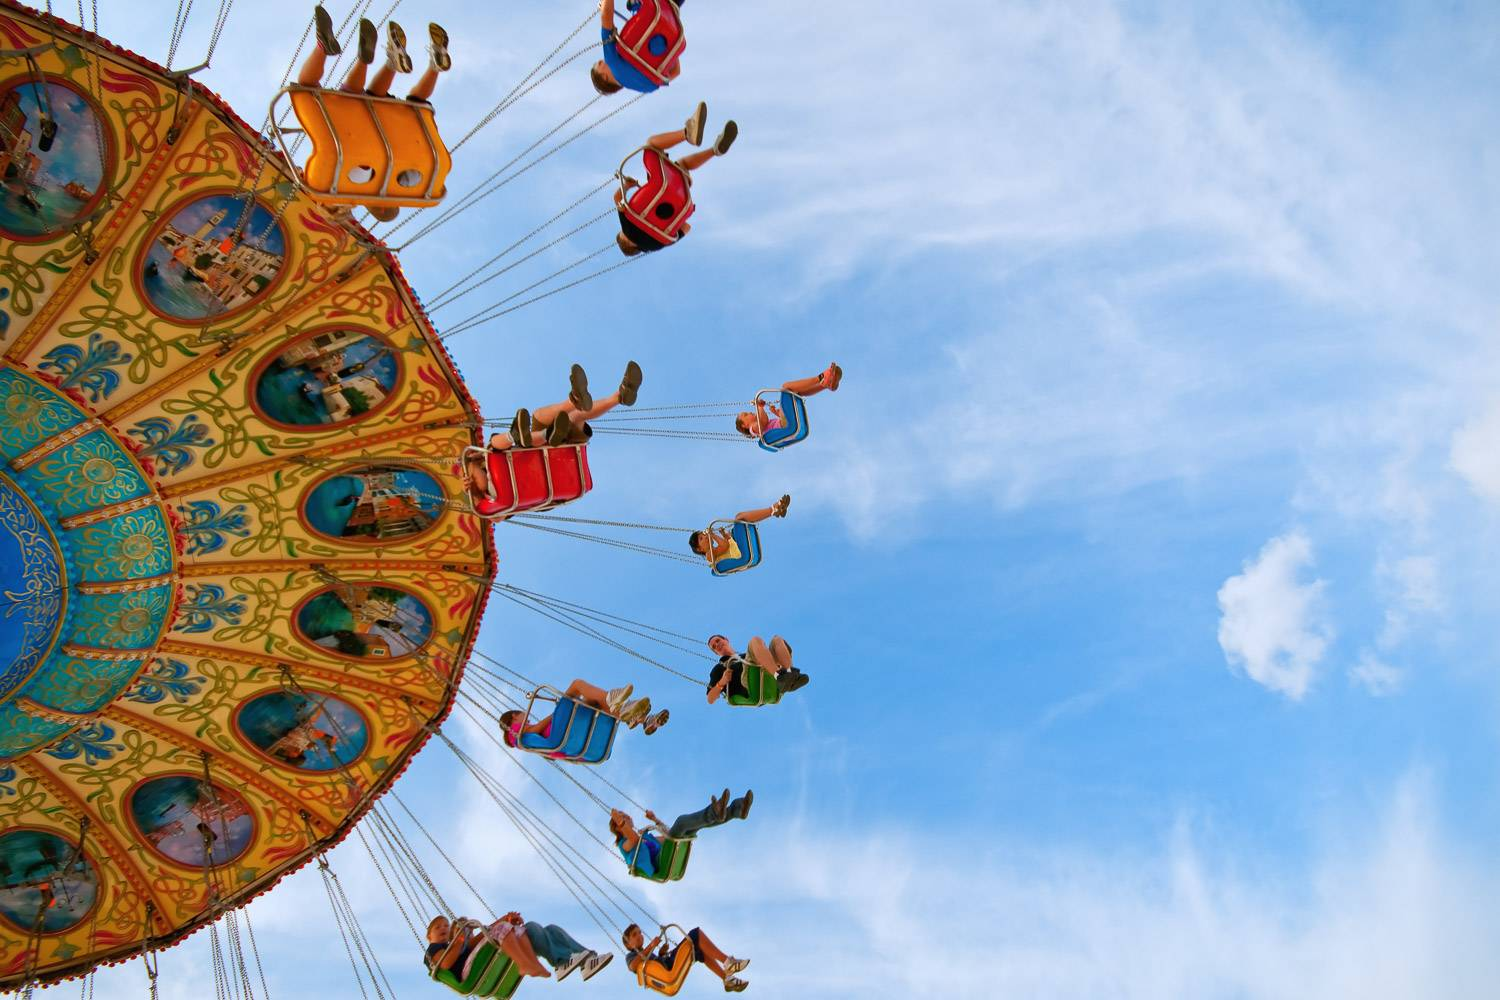 Image of flying swings at an amusement park (Photo credit: Unsplash)